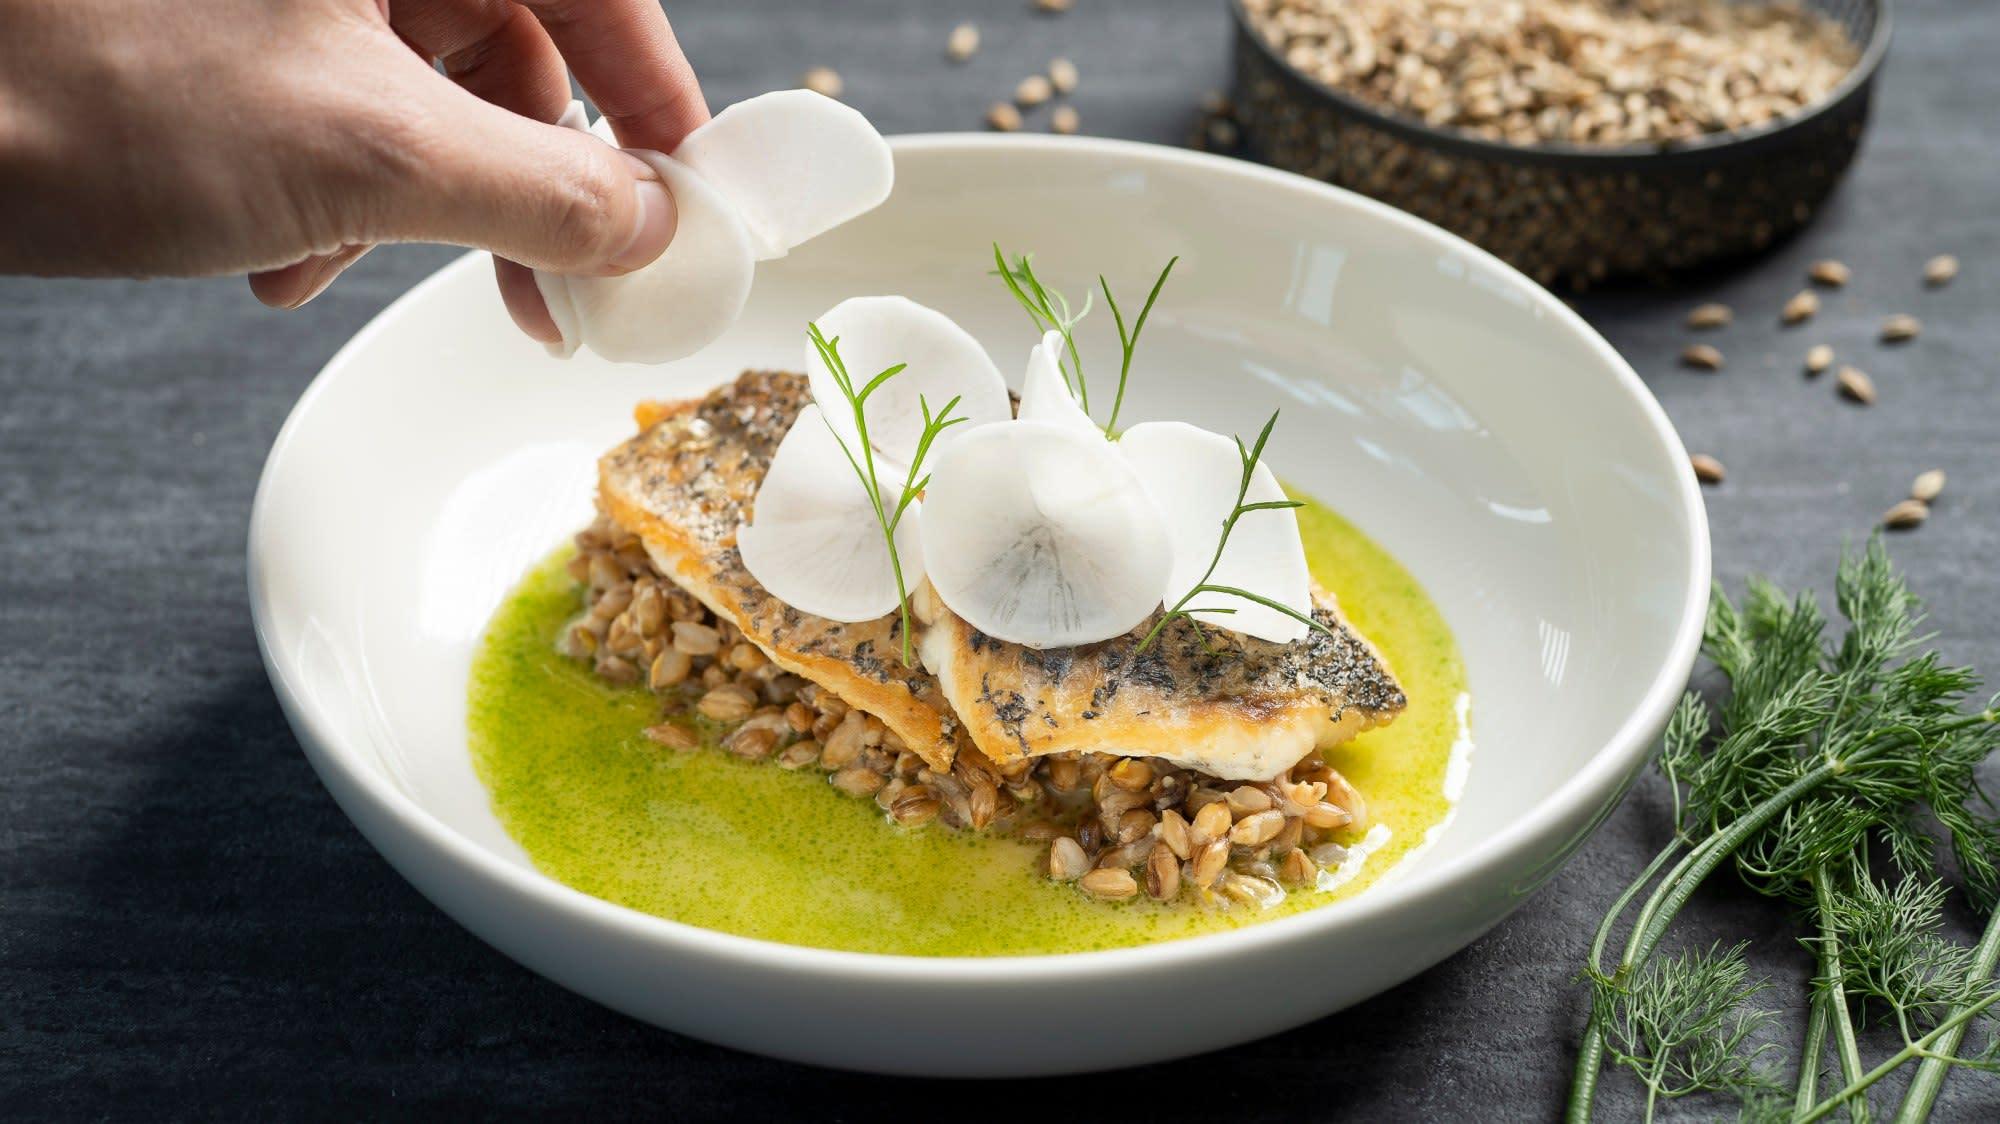 Easy home recipe: LeVel33's sea bass and beer malt 'risotto' | CNA Lifestyle